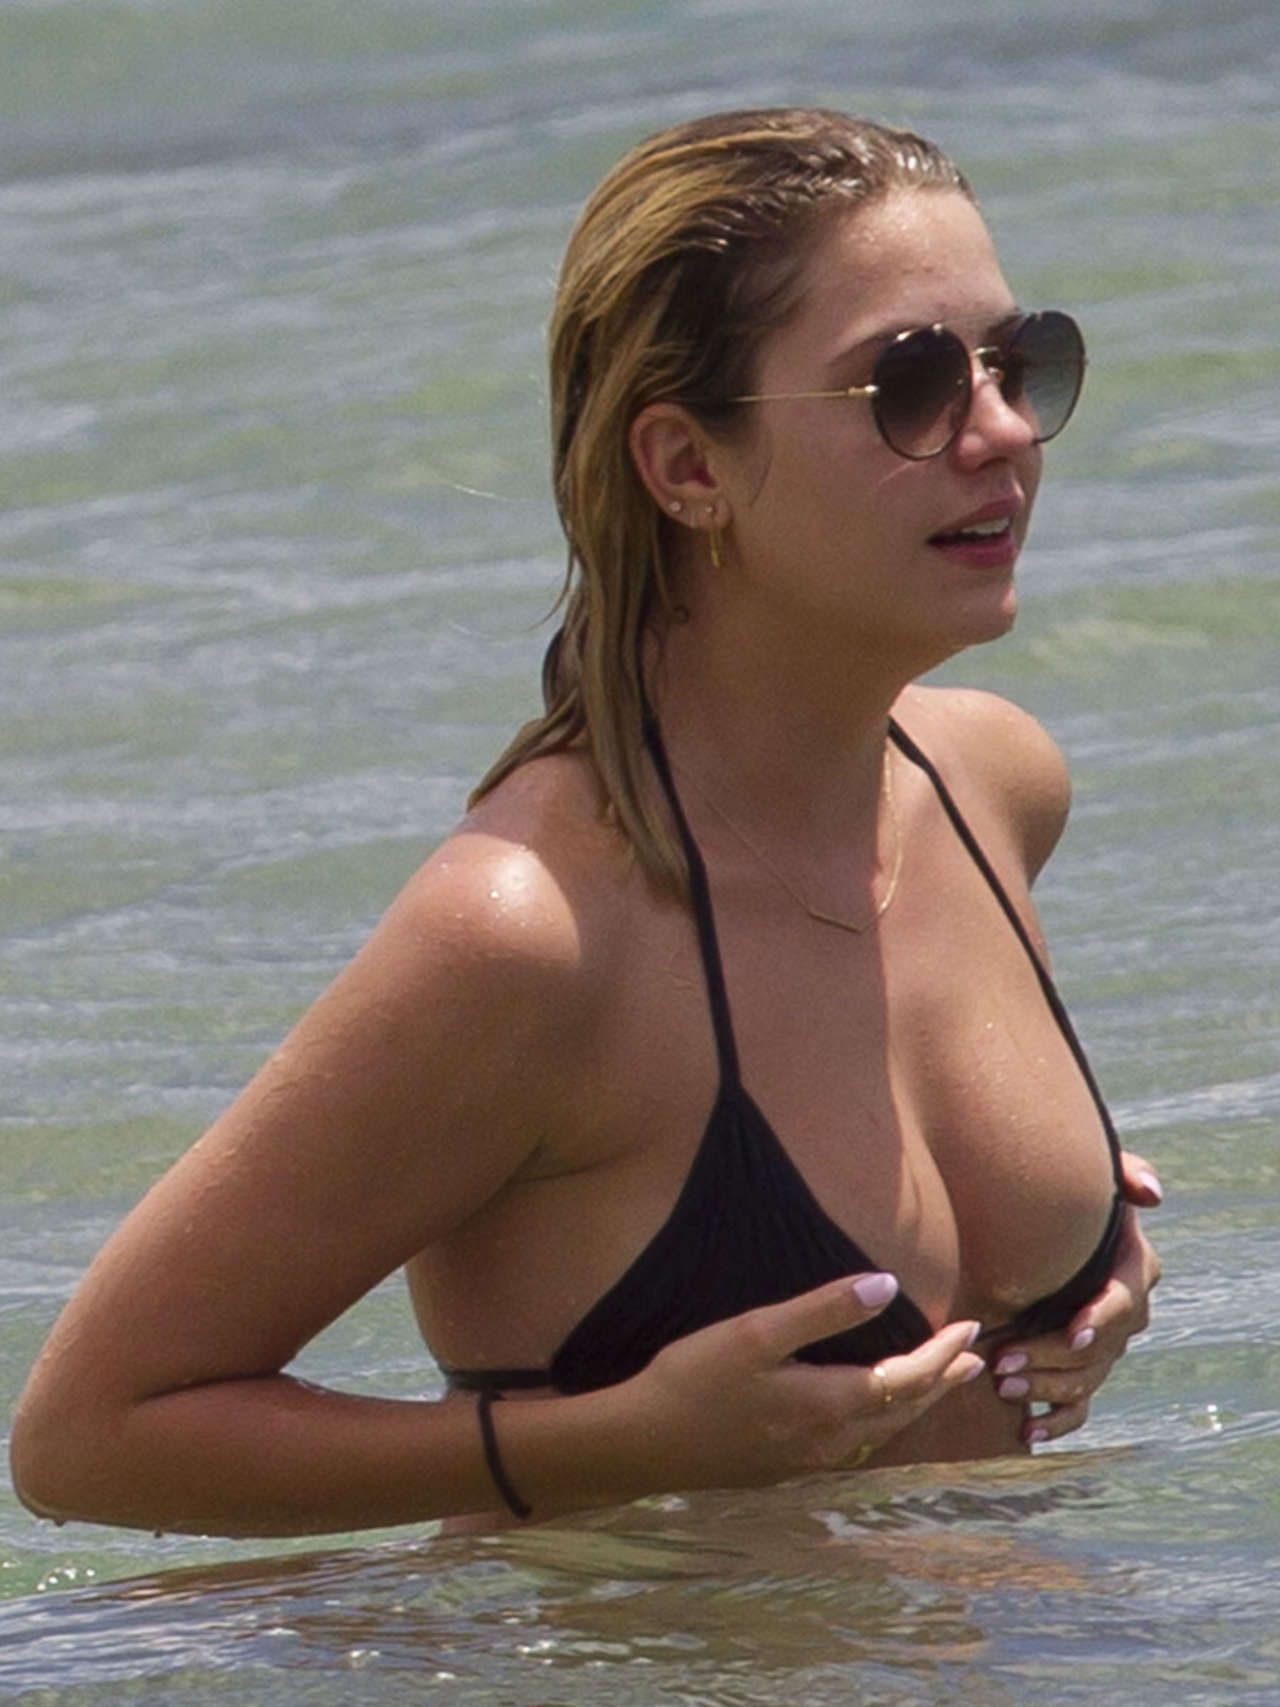 Ashley Benson in Bikini